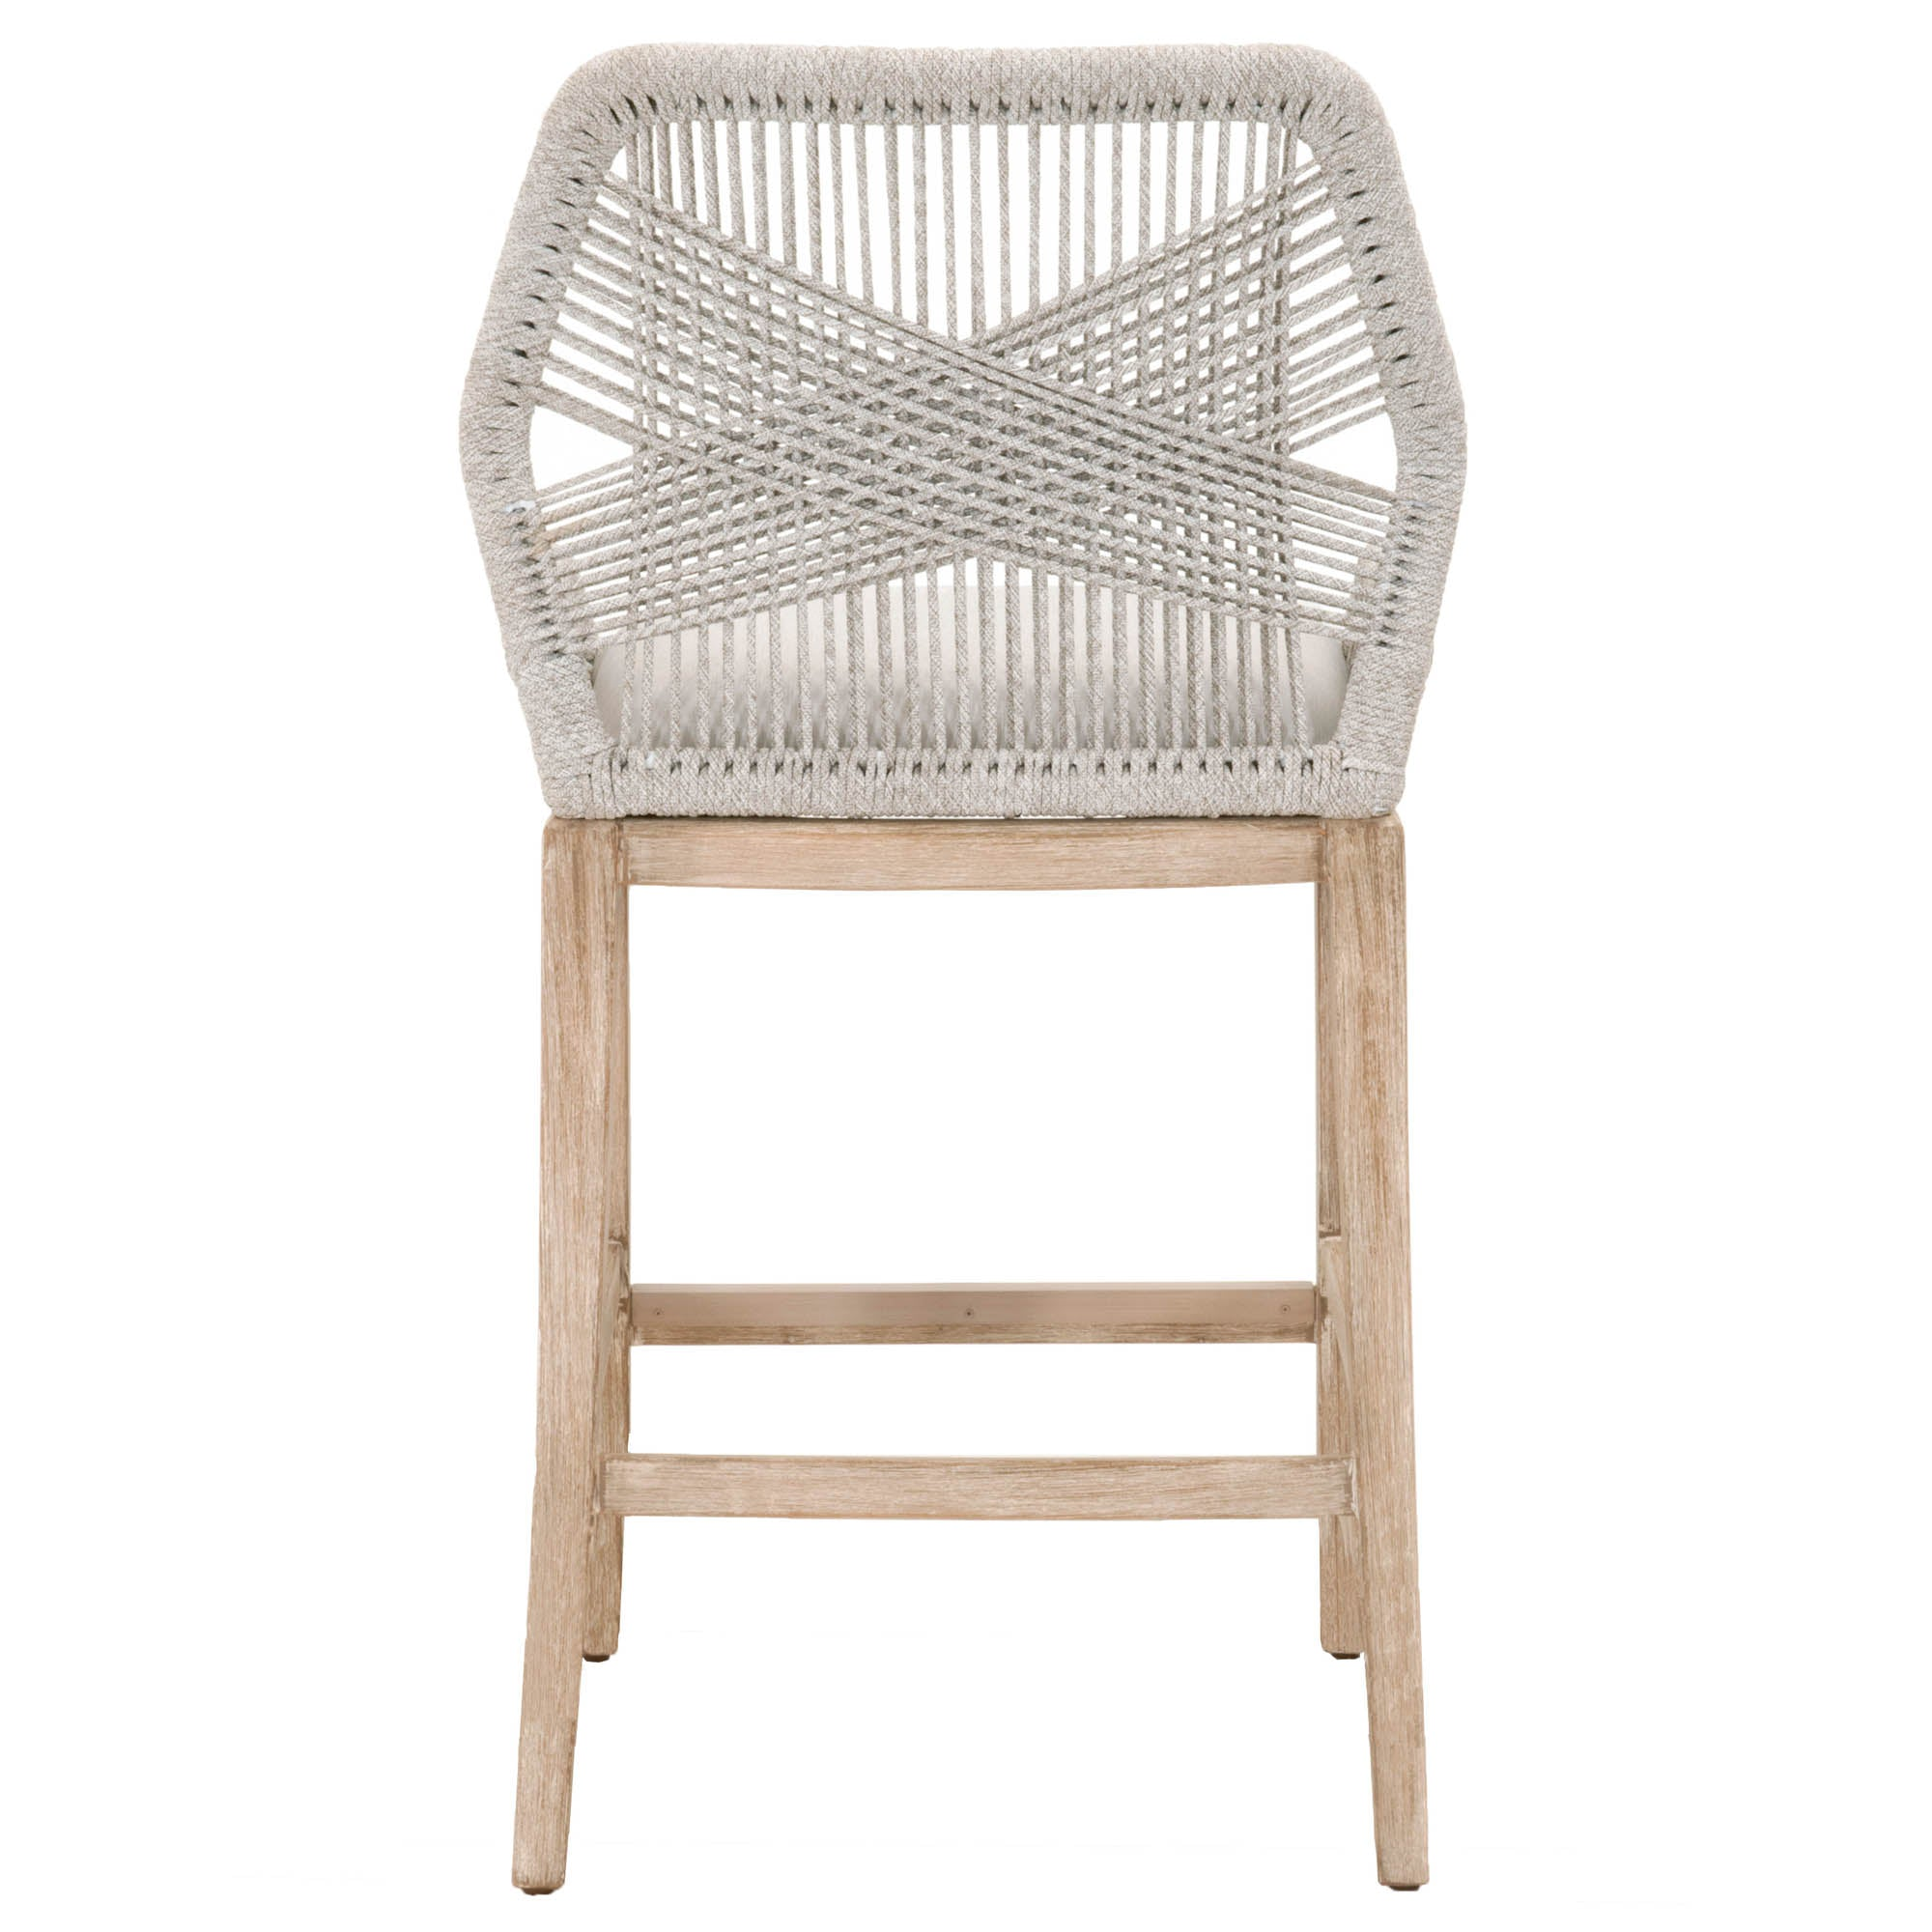 Essentials for Living-Loom Barstool-Barstools-MODTEMPO